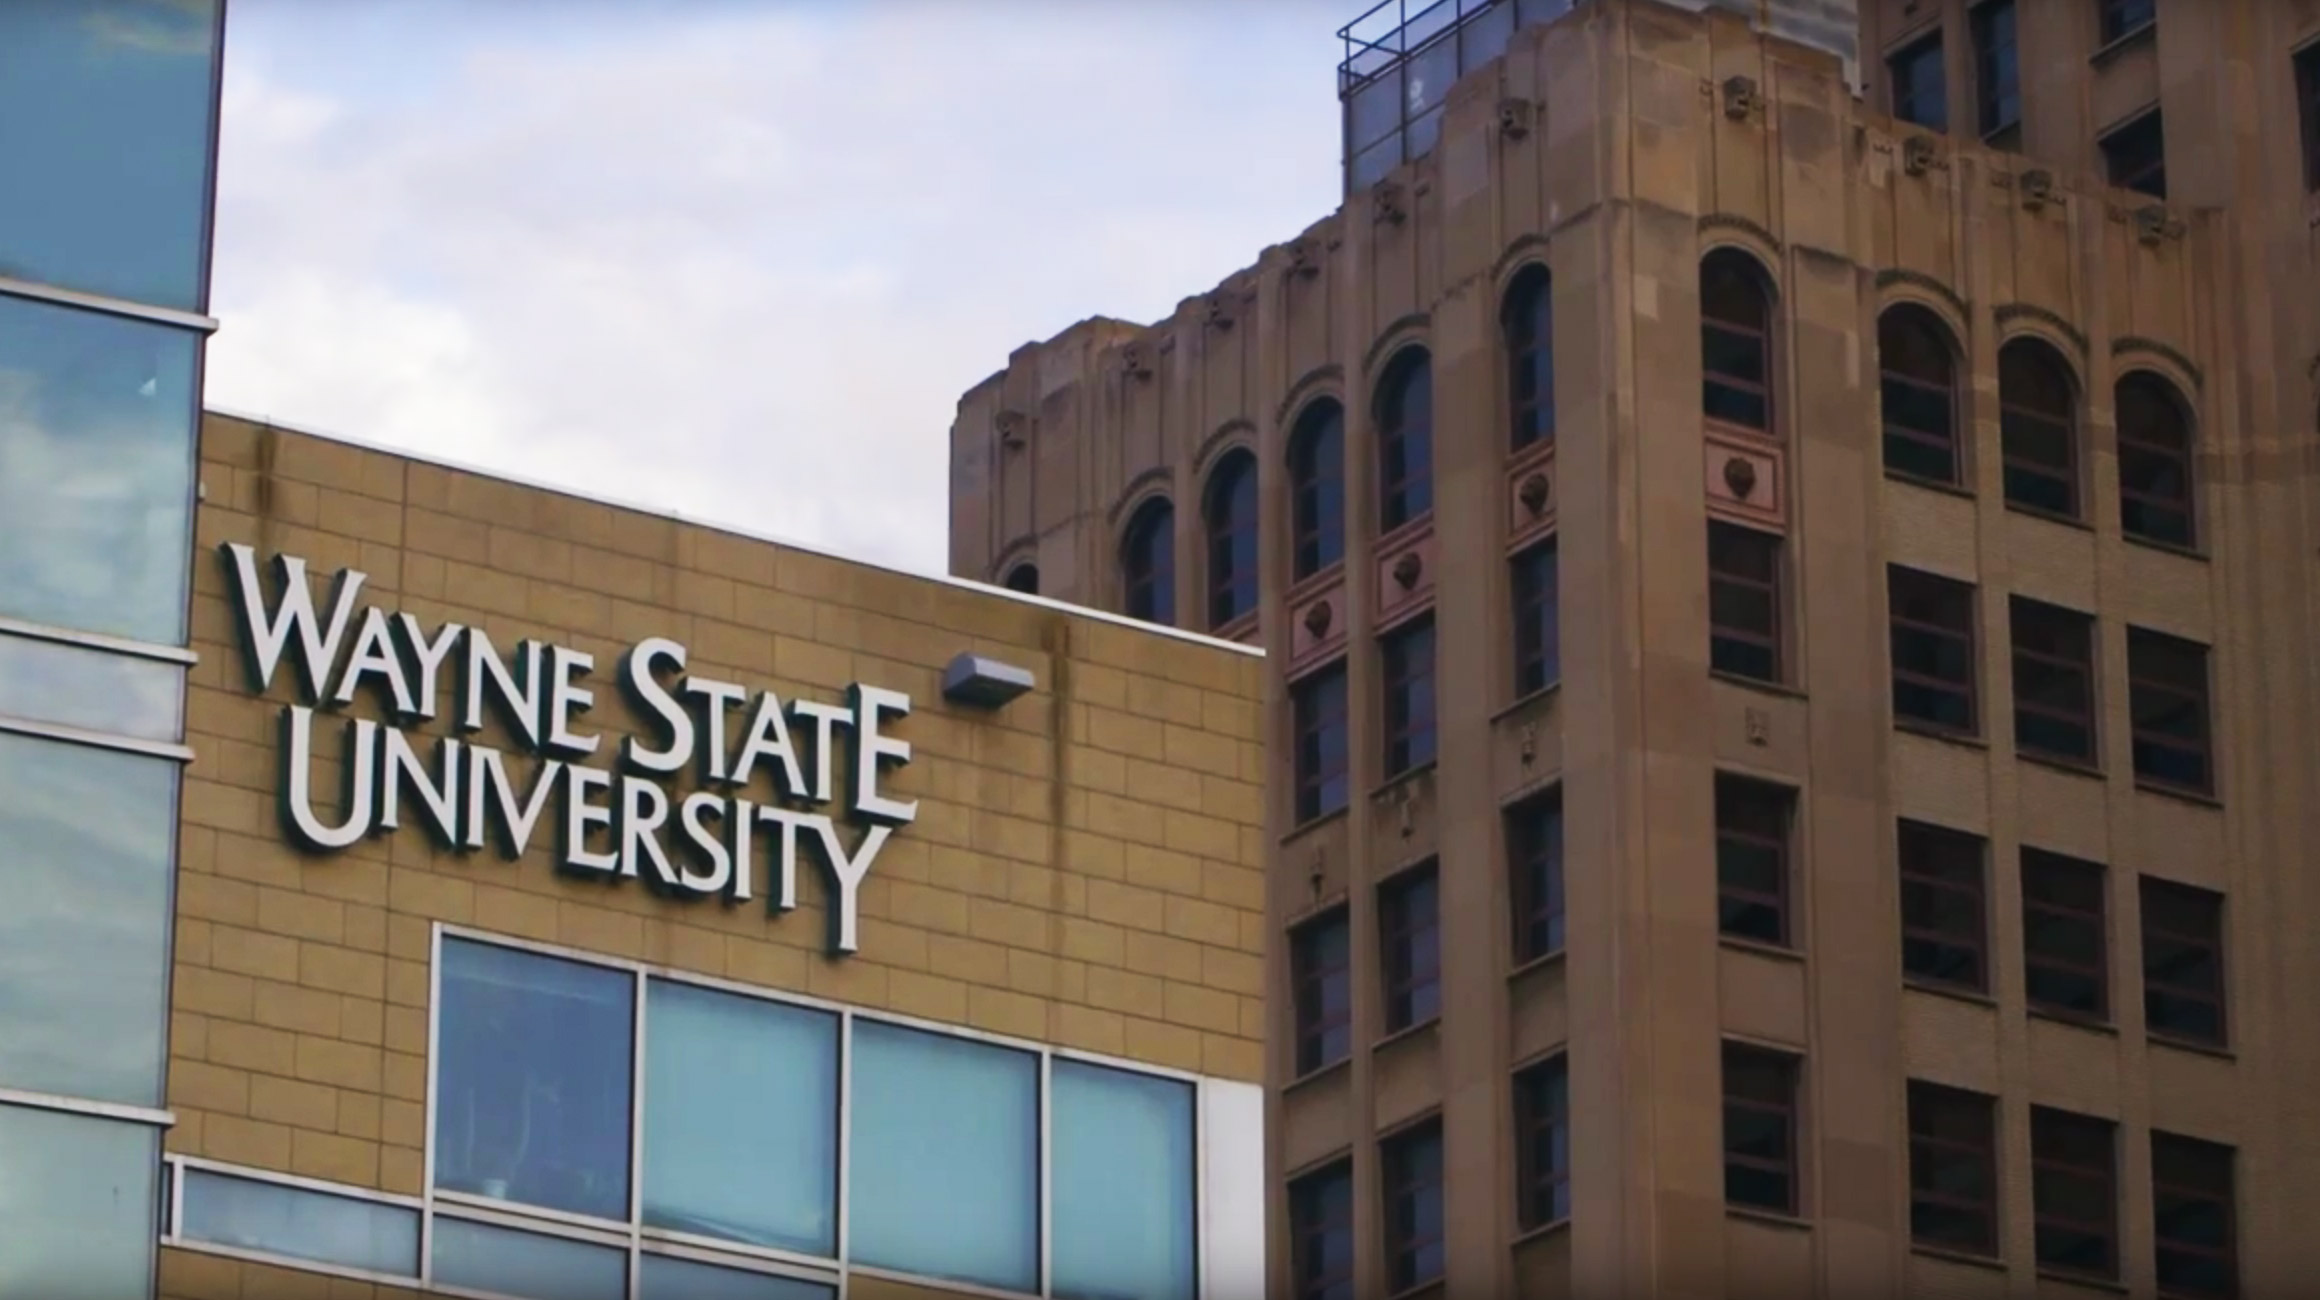 10 Easiest Classes at Wayne State University